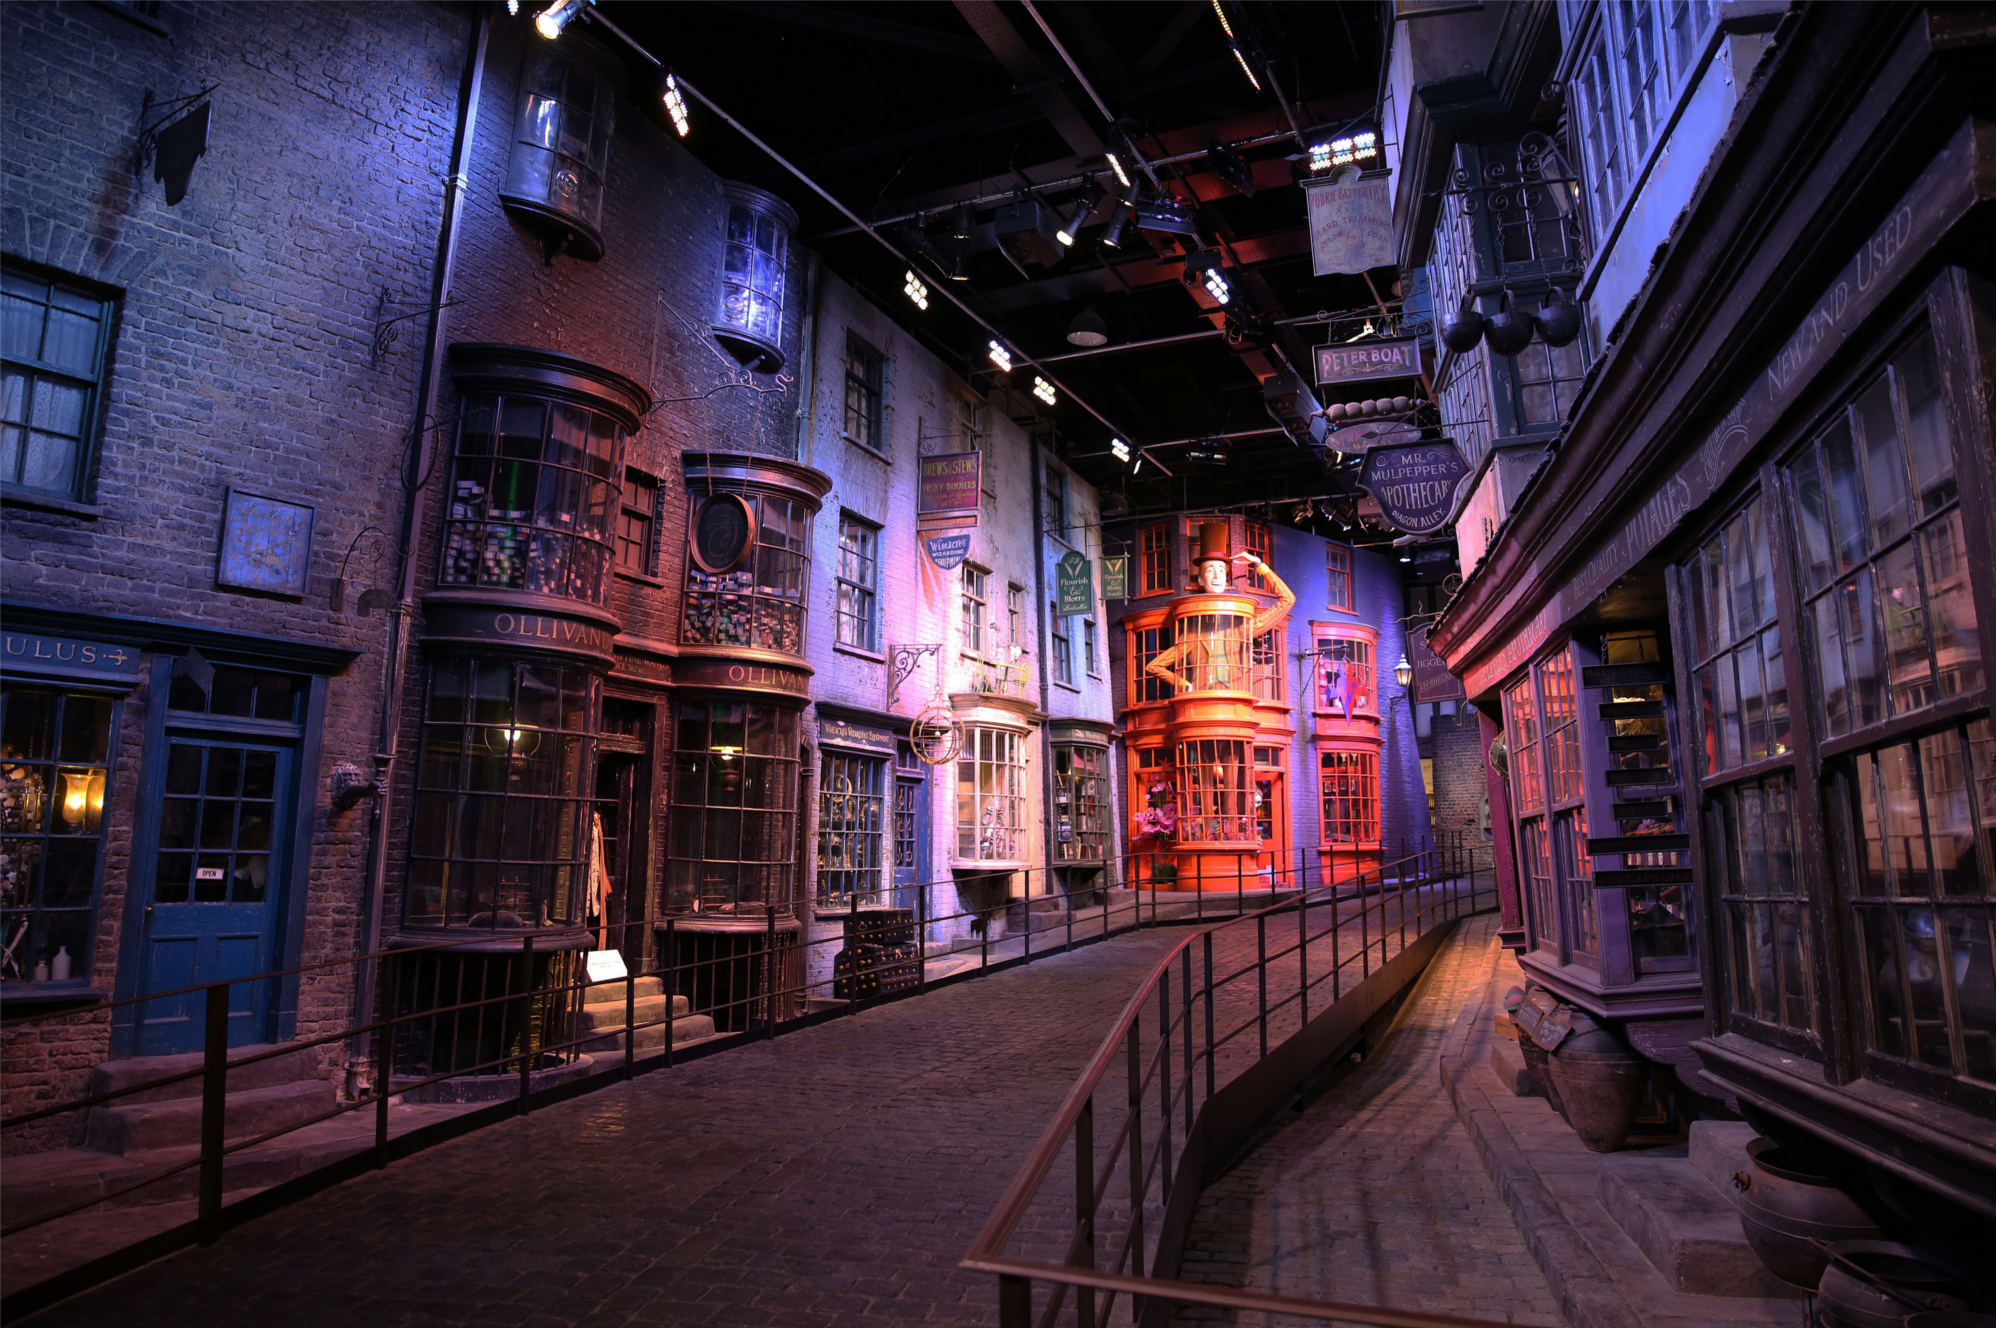 160d921aff9 Studio Tour London  Wands at the ready! Step behind the scenes of the Harry  Potter films to experience the magic first hand. See original sets from the  ...